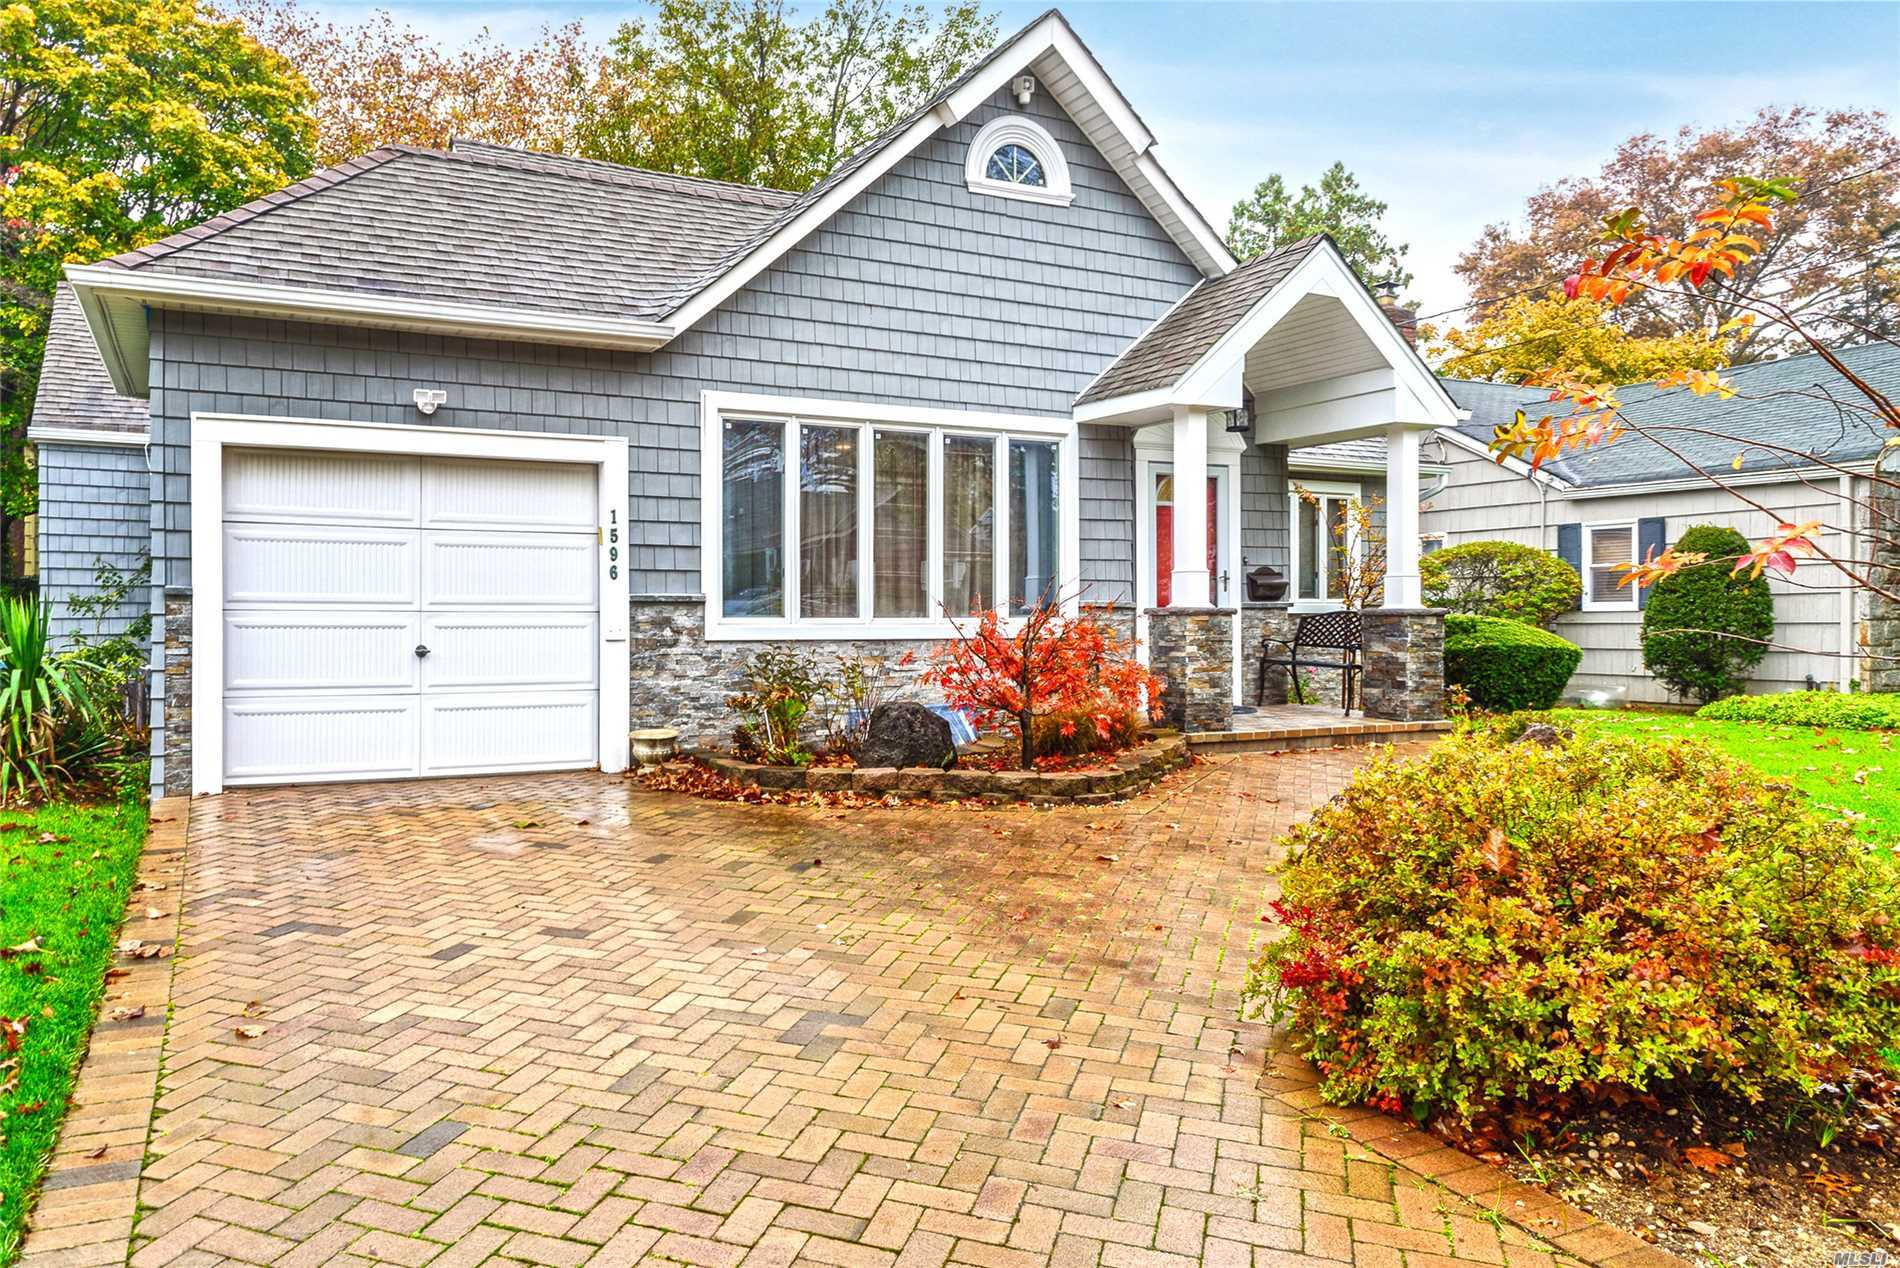 Expanded Updated Home In Highly Desirable Sd#14. Open Spacious Kitchen And Den With High Ceilings.  Plenty Of Space For A Growing Family 4 Bedrooms Two And Half Bathrooms Plus A Full Finished Basement. Super Quiet Block Truly A Great Location. Don't Miss This One